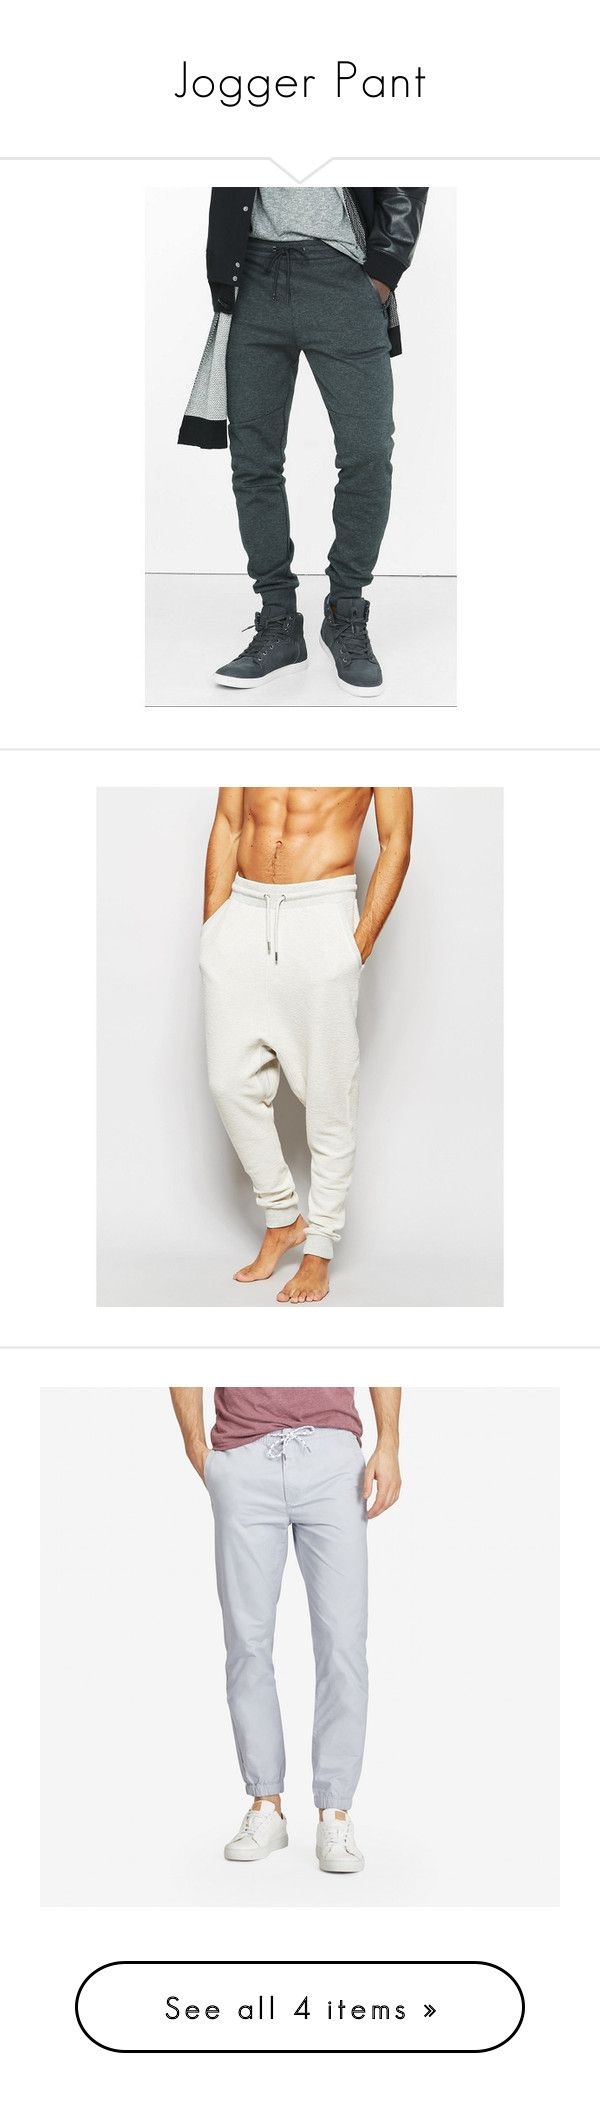 """""""Jogger Pant"""" by josselynne9725 ❤ liked on Polyvore featuring menswear, men's fashion, men's clothing, men's activewear, men's activewear pants, grey, off white and black gravel"""